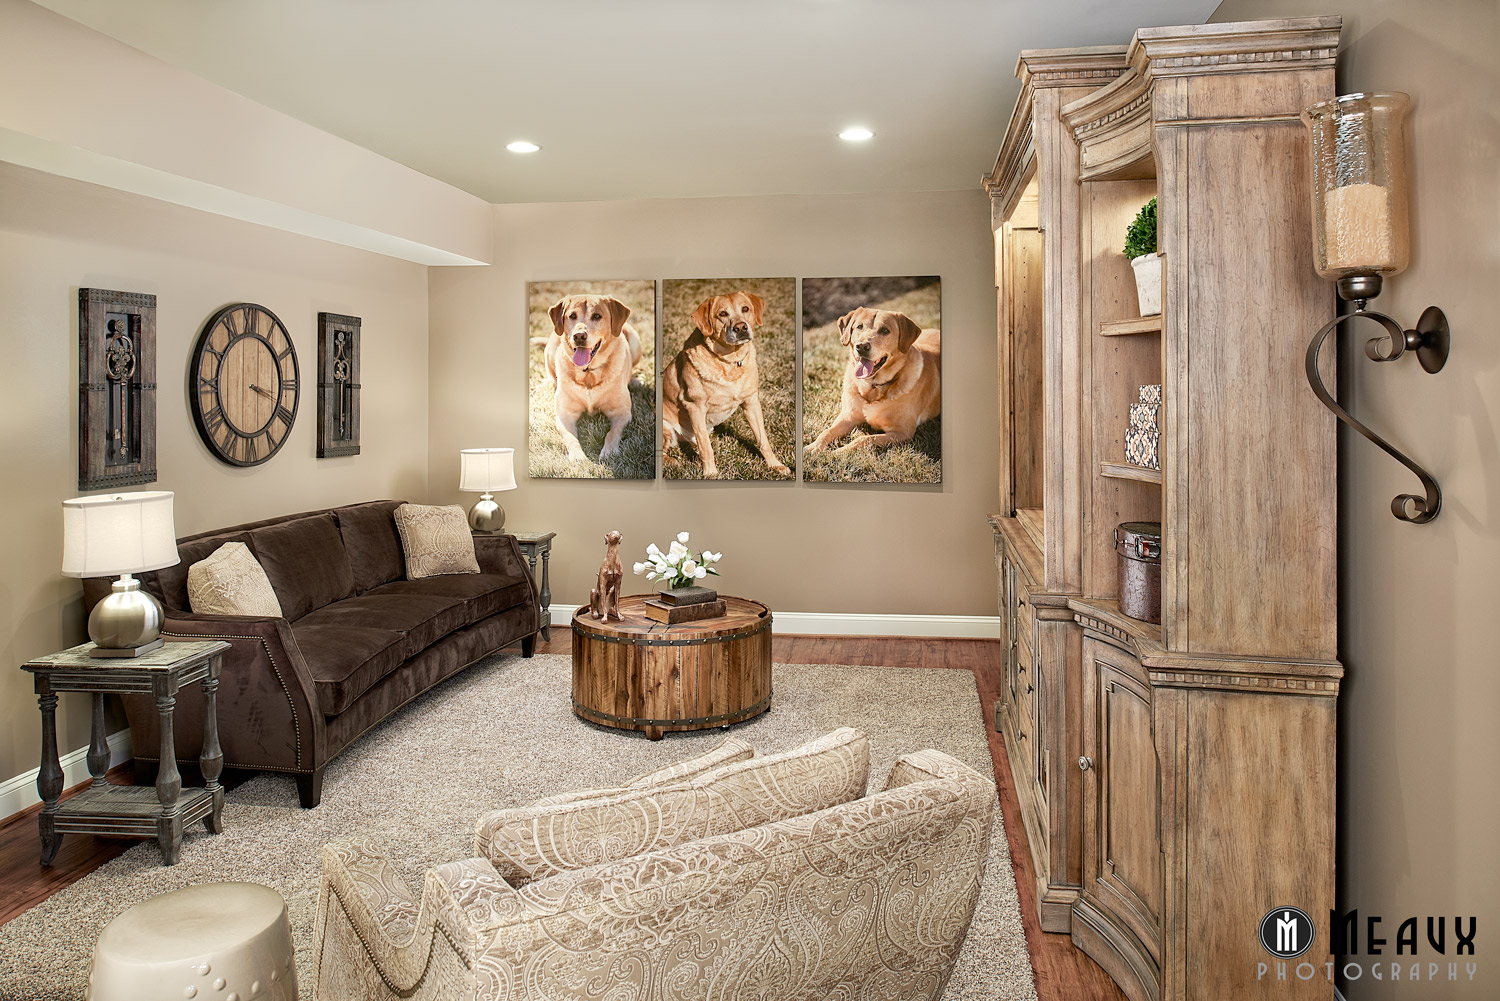 the clients wanted to also use the basement for relaxation and family